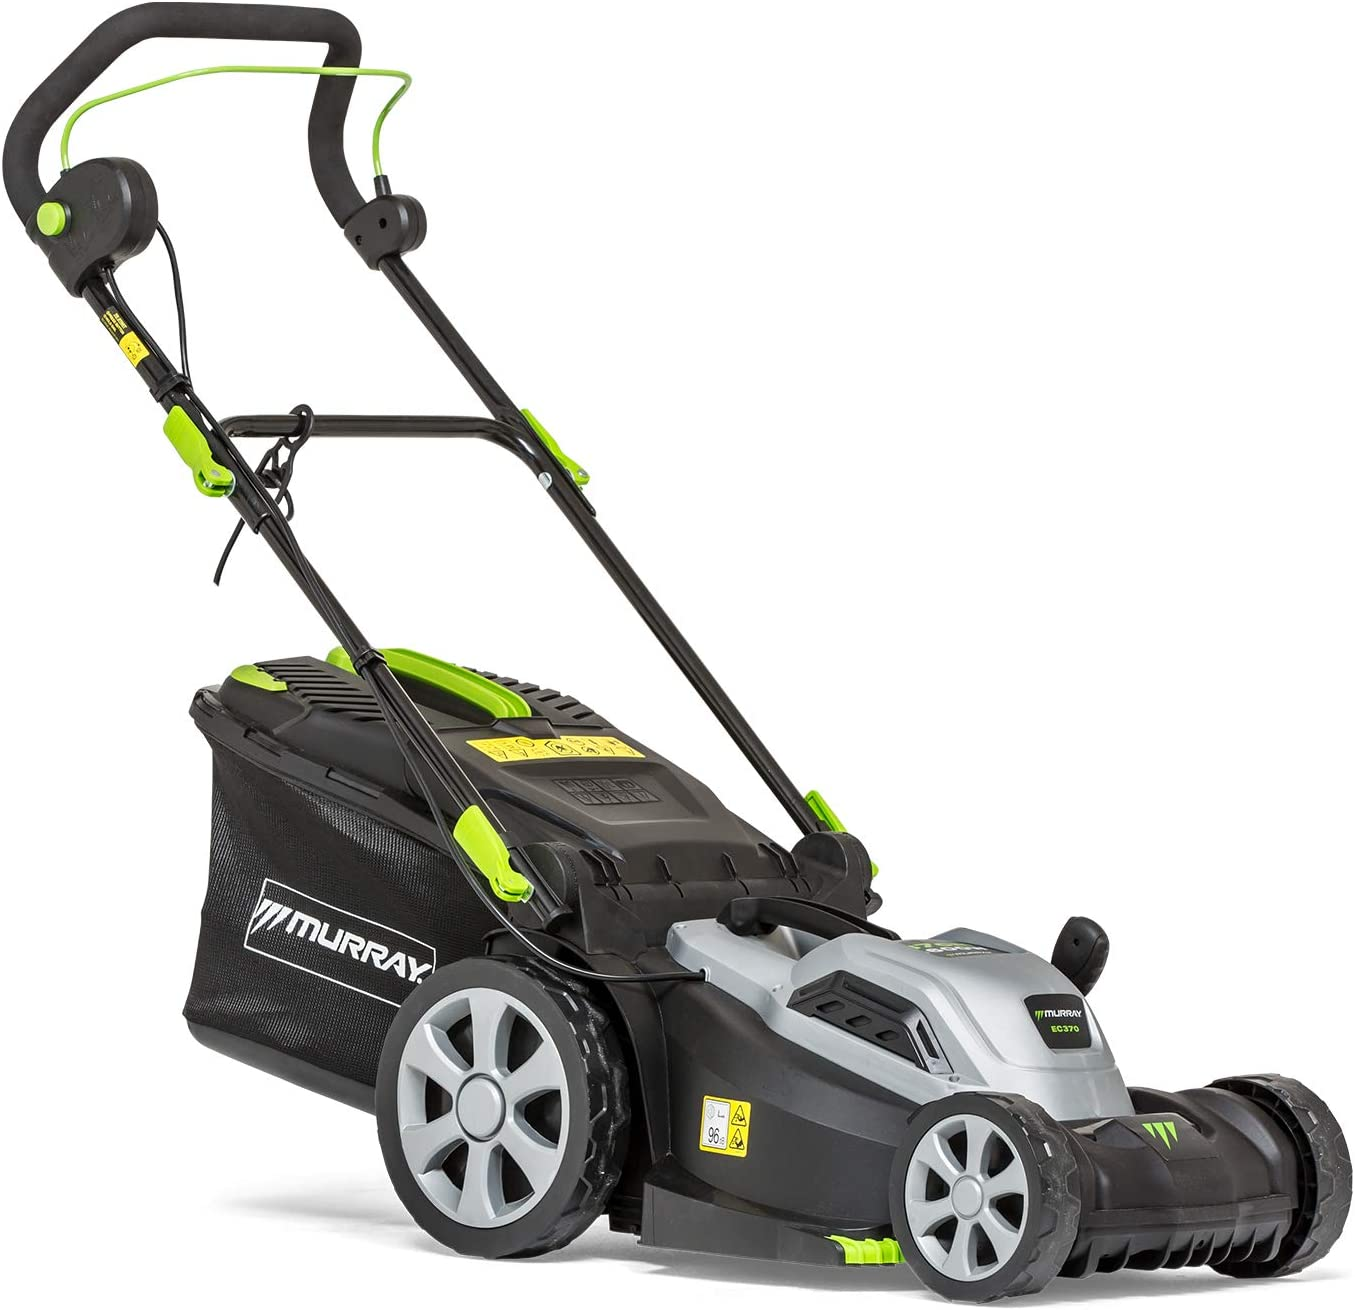 Murray EC320 Electric Corded Push Lawn Mower